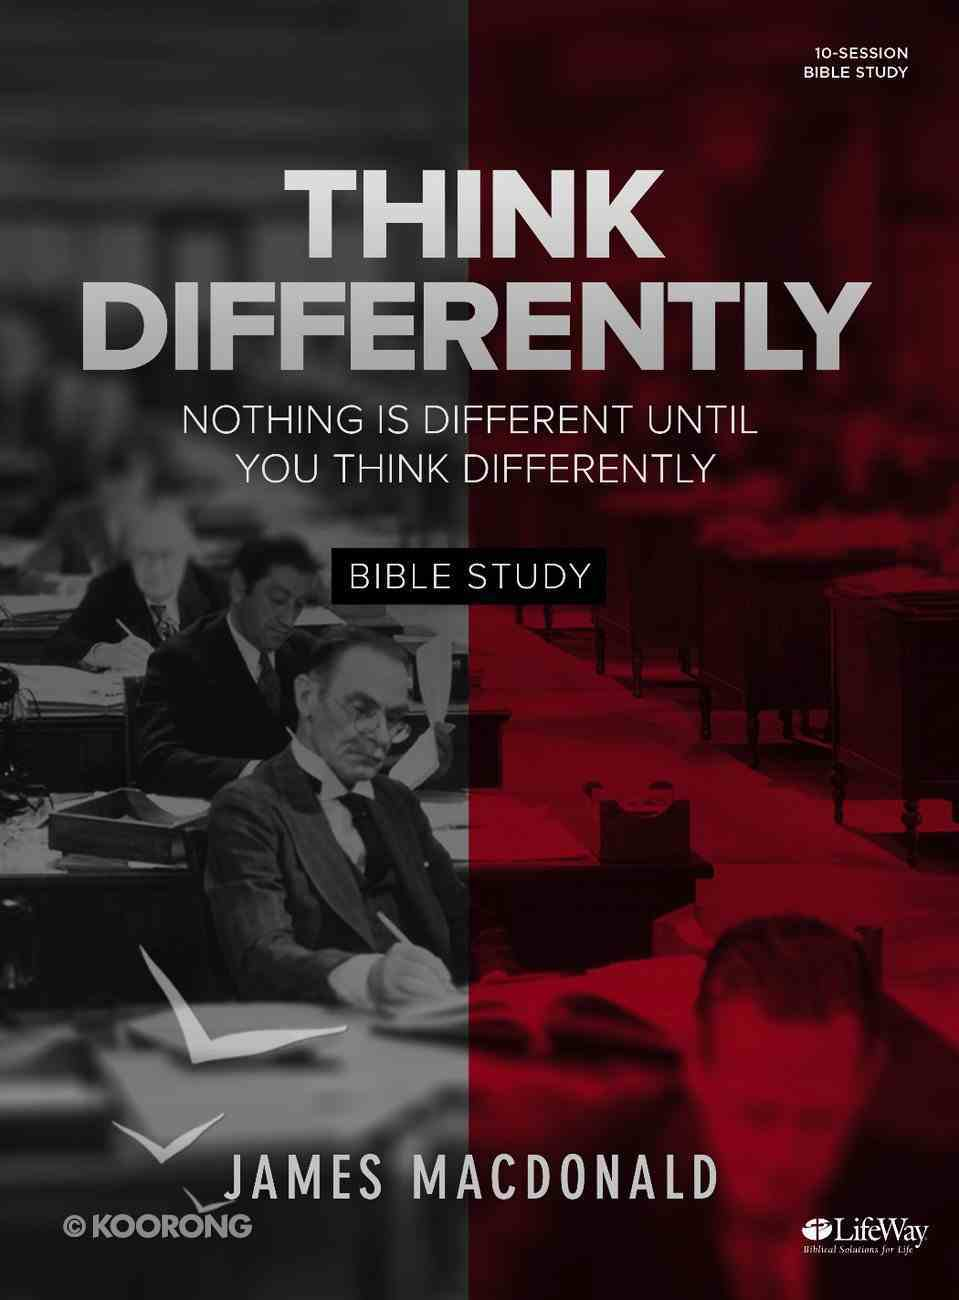 Think Differently: Nothing is Different Until You Think Differently (Bible Study Book) Paperback